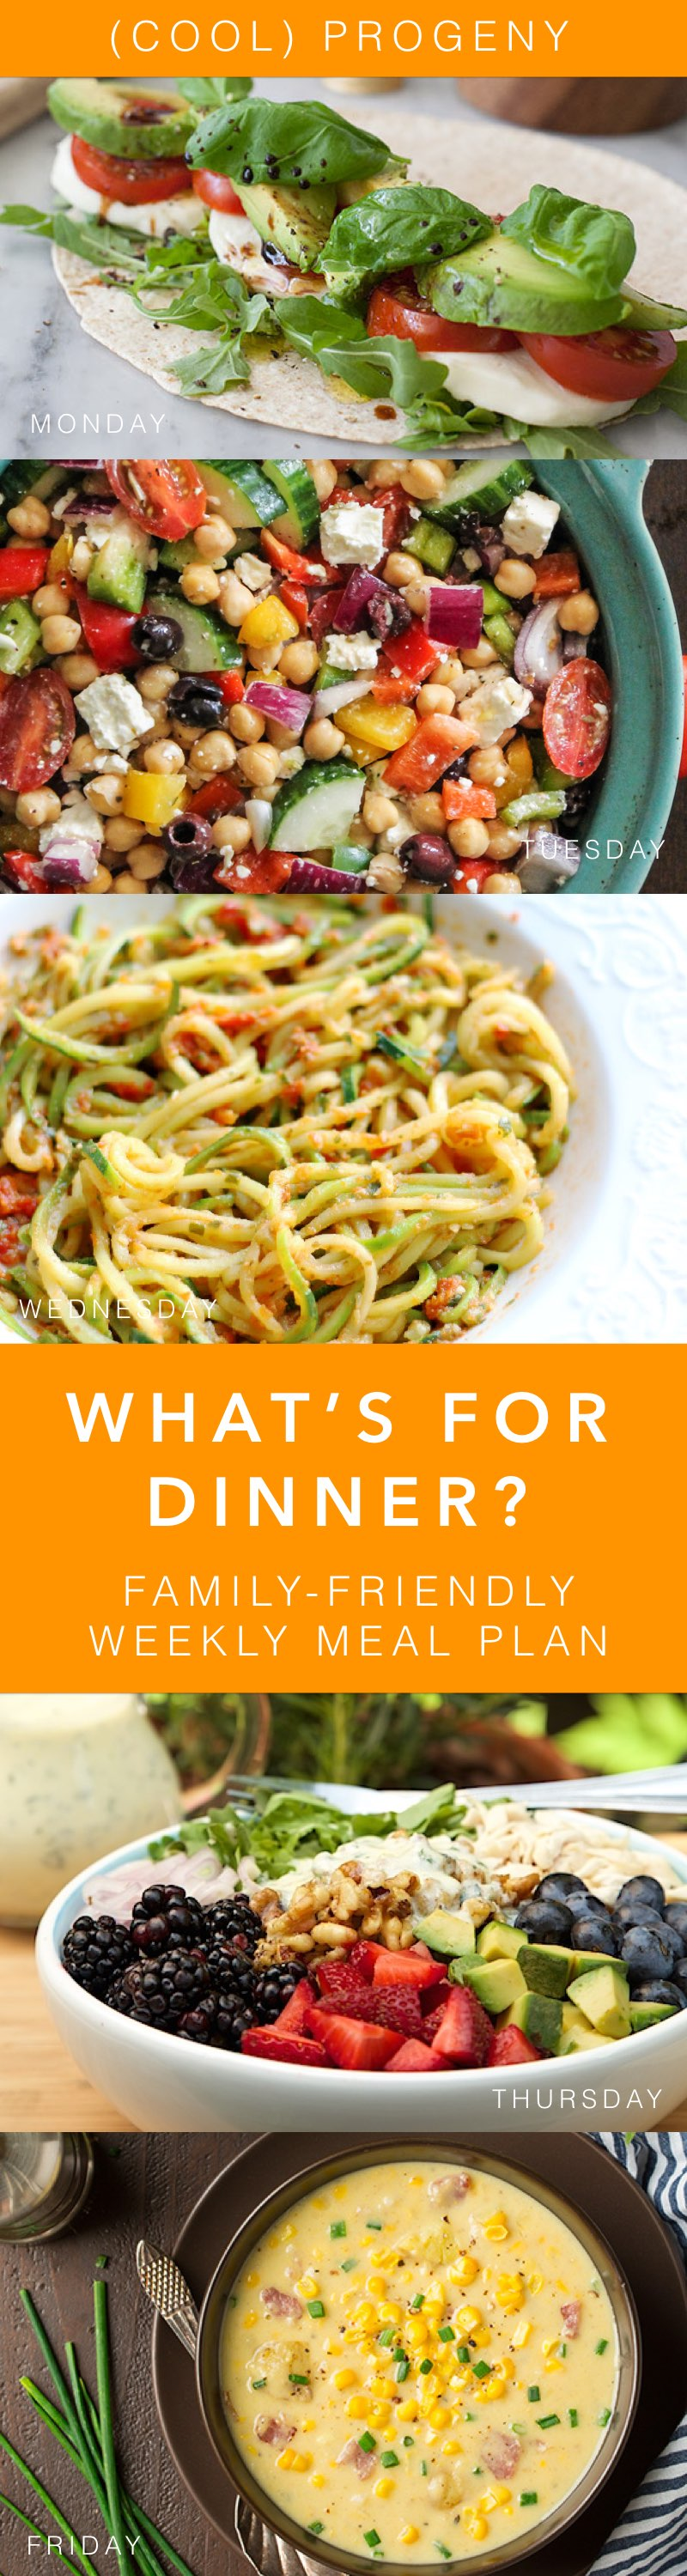 Family Friendly Dinners this Week - (cool) progeny